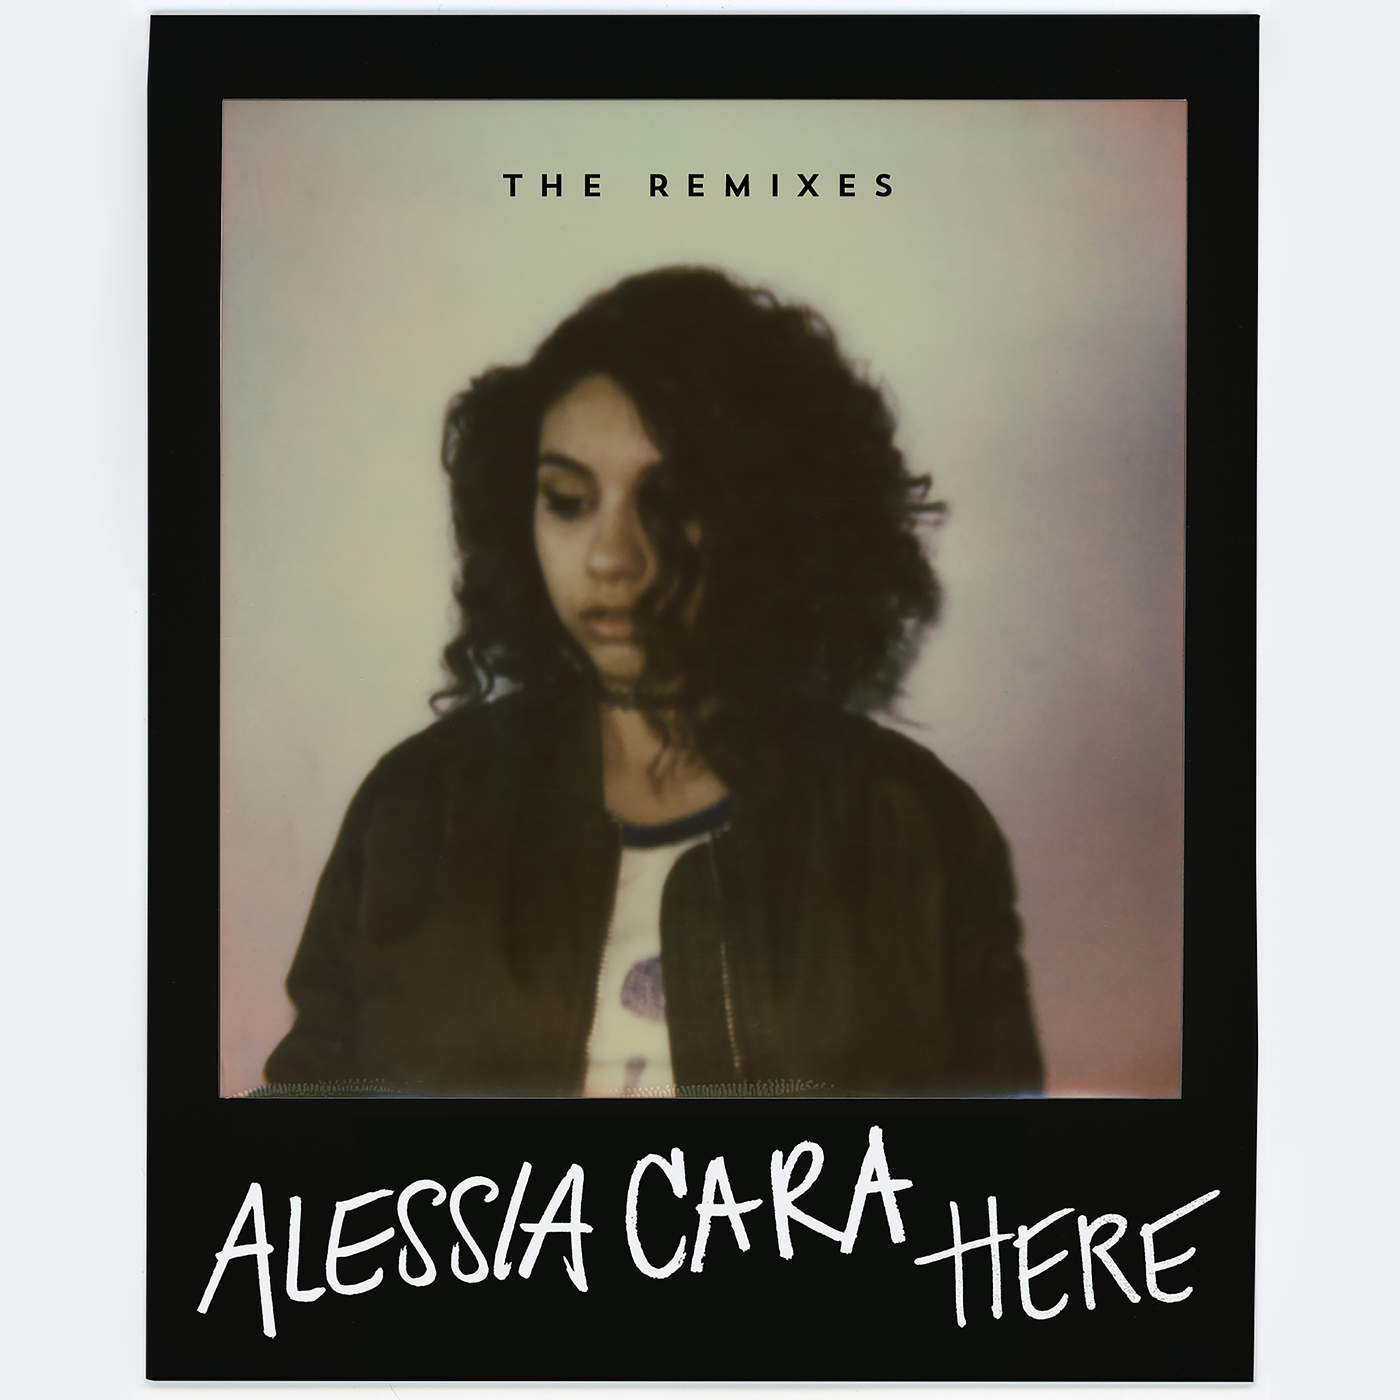 Alessia Cara - Here (The Remixes) - EP Cover